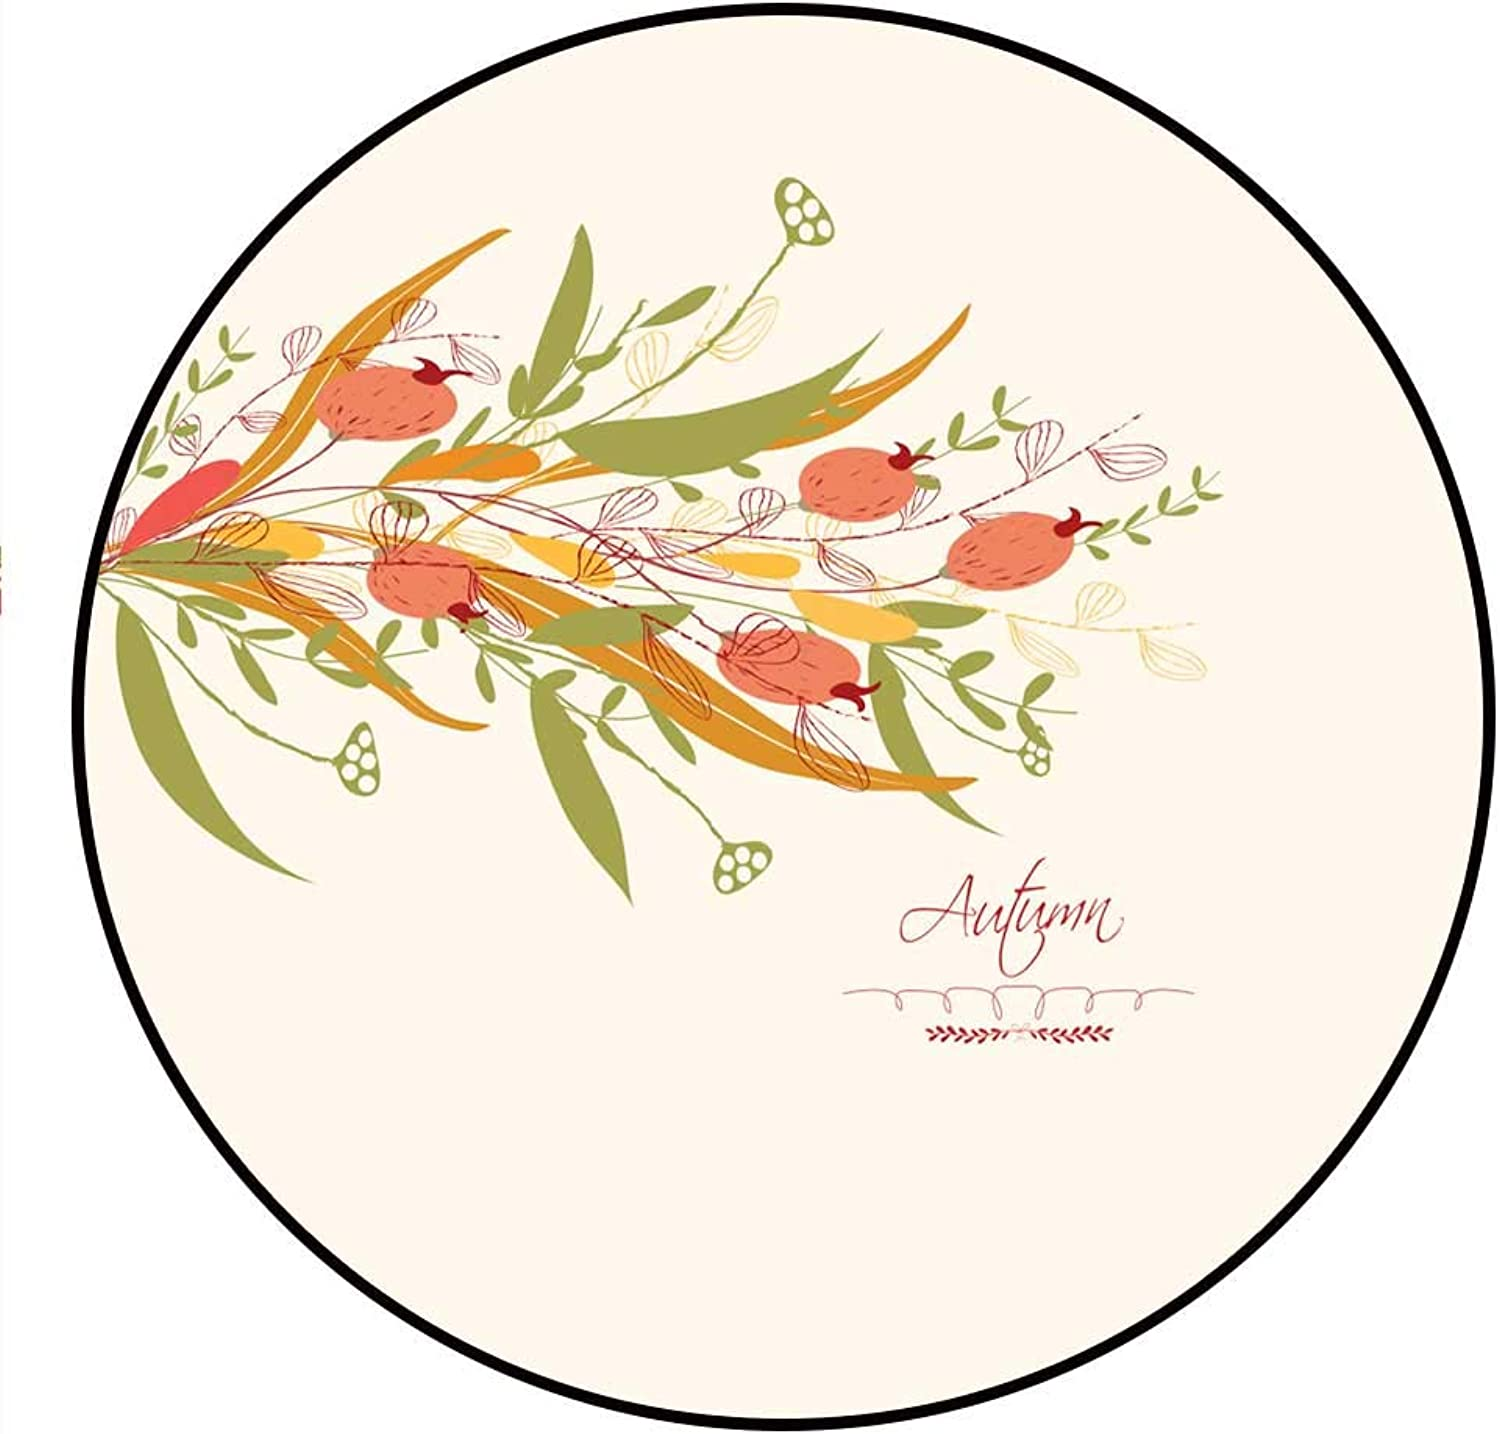 Hua Wu Chou Round Chair matround Welcome mat D4' 1.2m Background of Autumn Leaves Greeting Cards